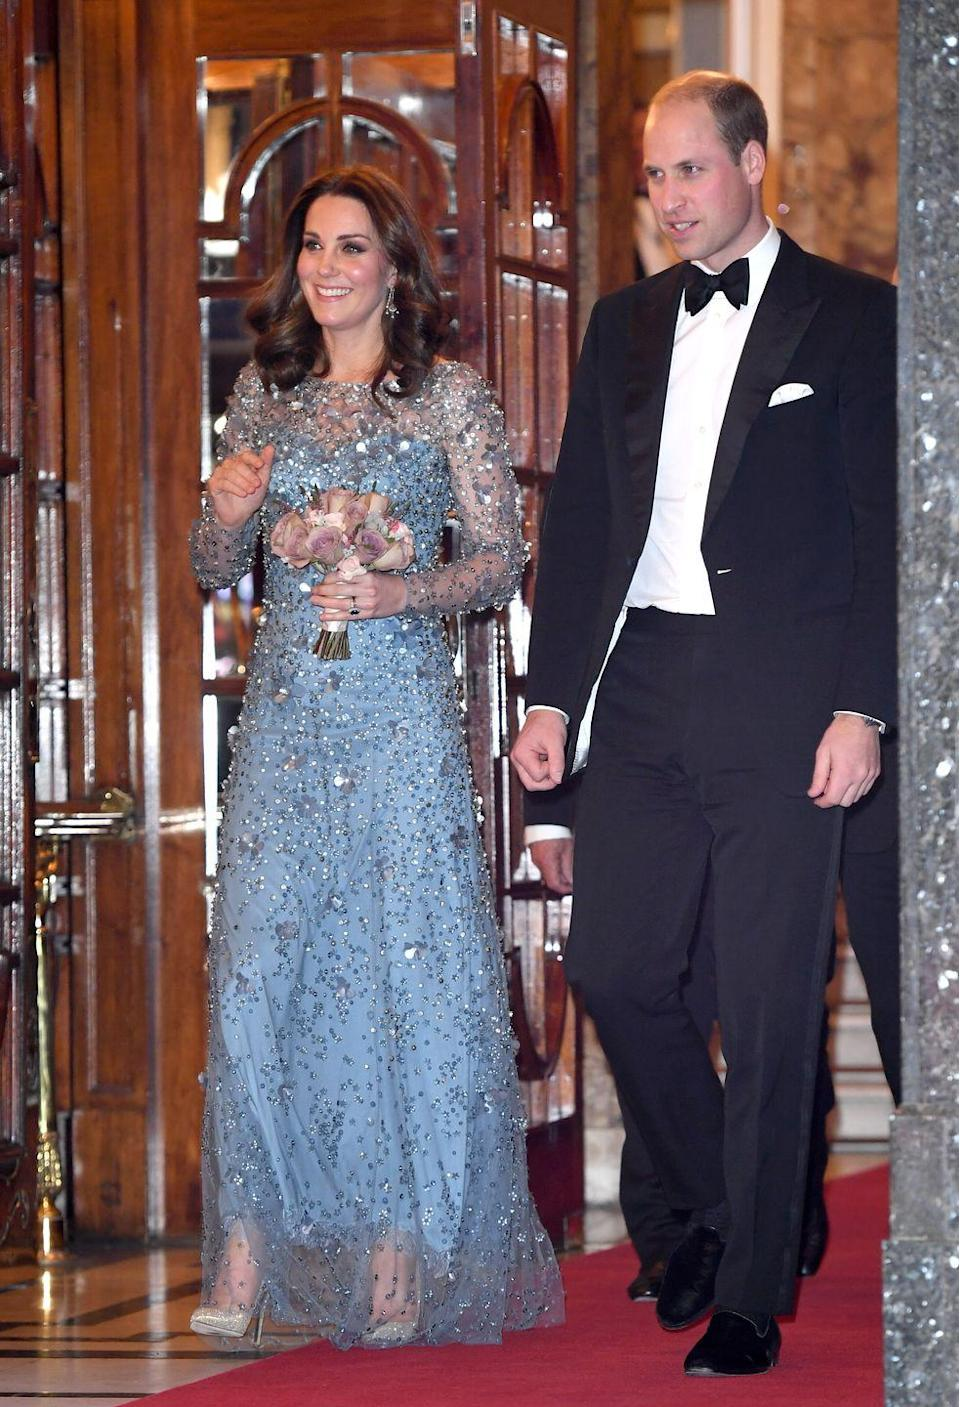 <p>The sheer sleeves and sweetheart neckline of this icy-blue Jenny Packham gown make this real-life royal look a lot like Elsa at an event at London's Palladium Theatre in November 2017.</p>